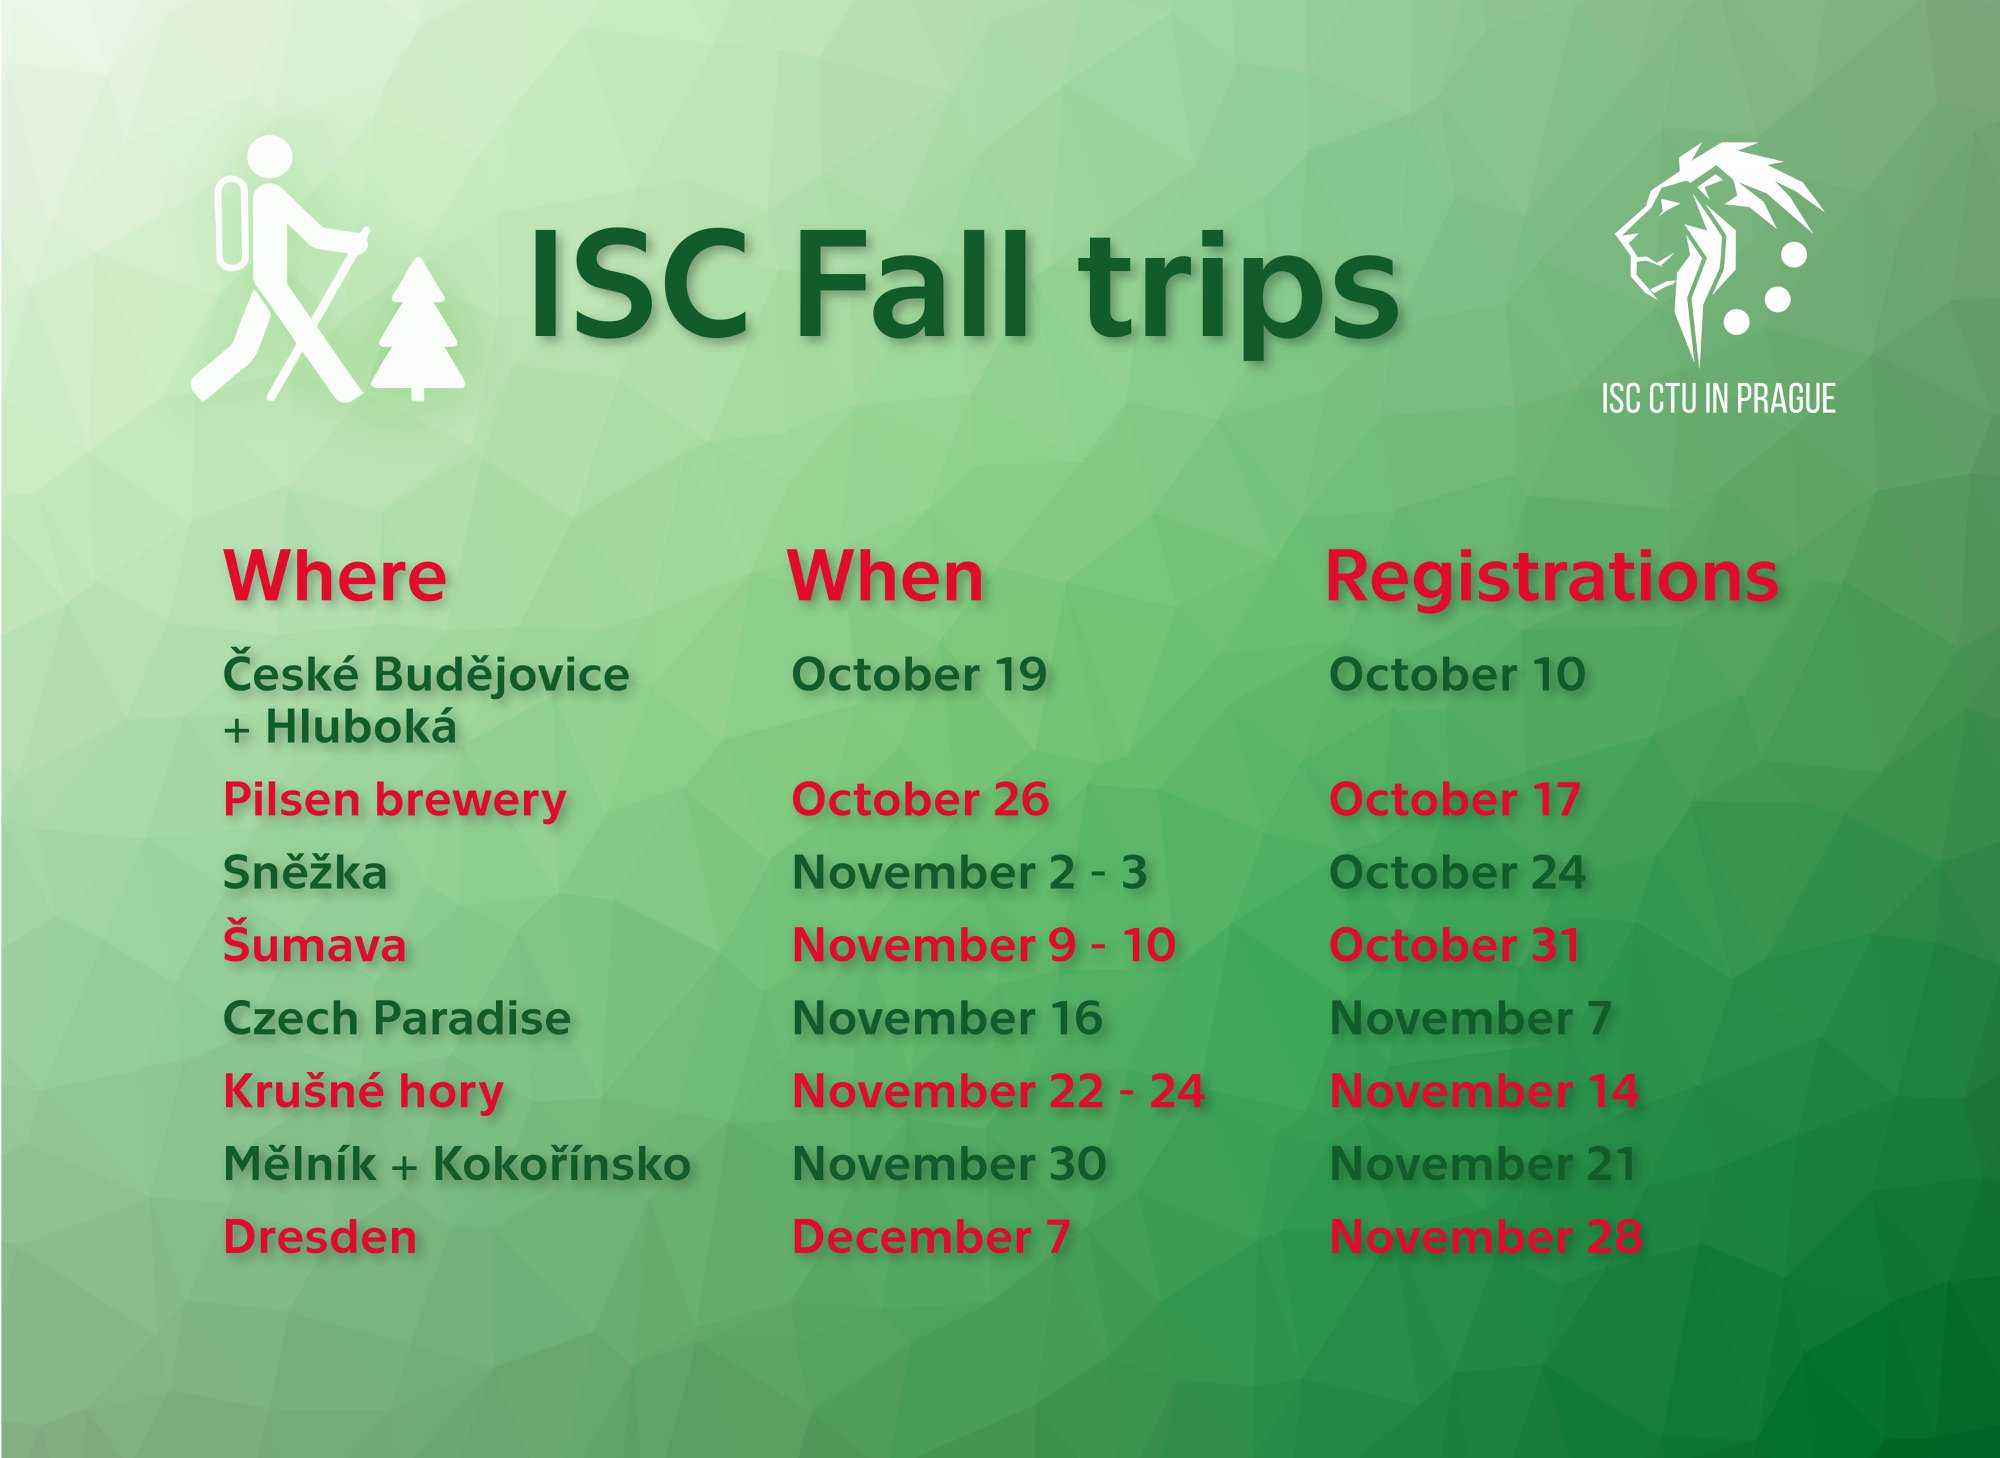 List of trips organised during the Fall 2019 semester